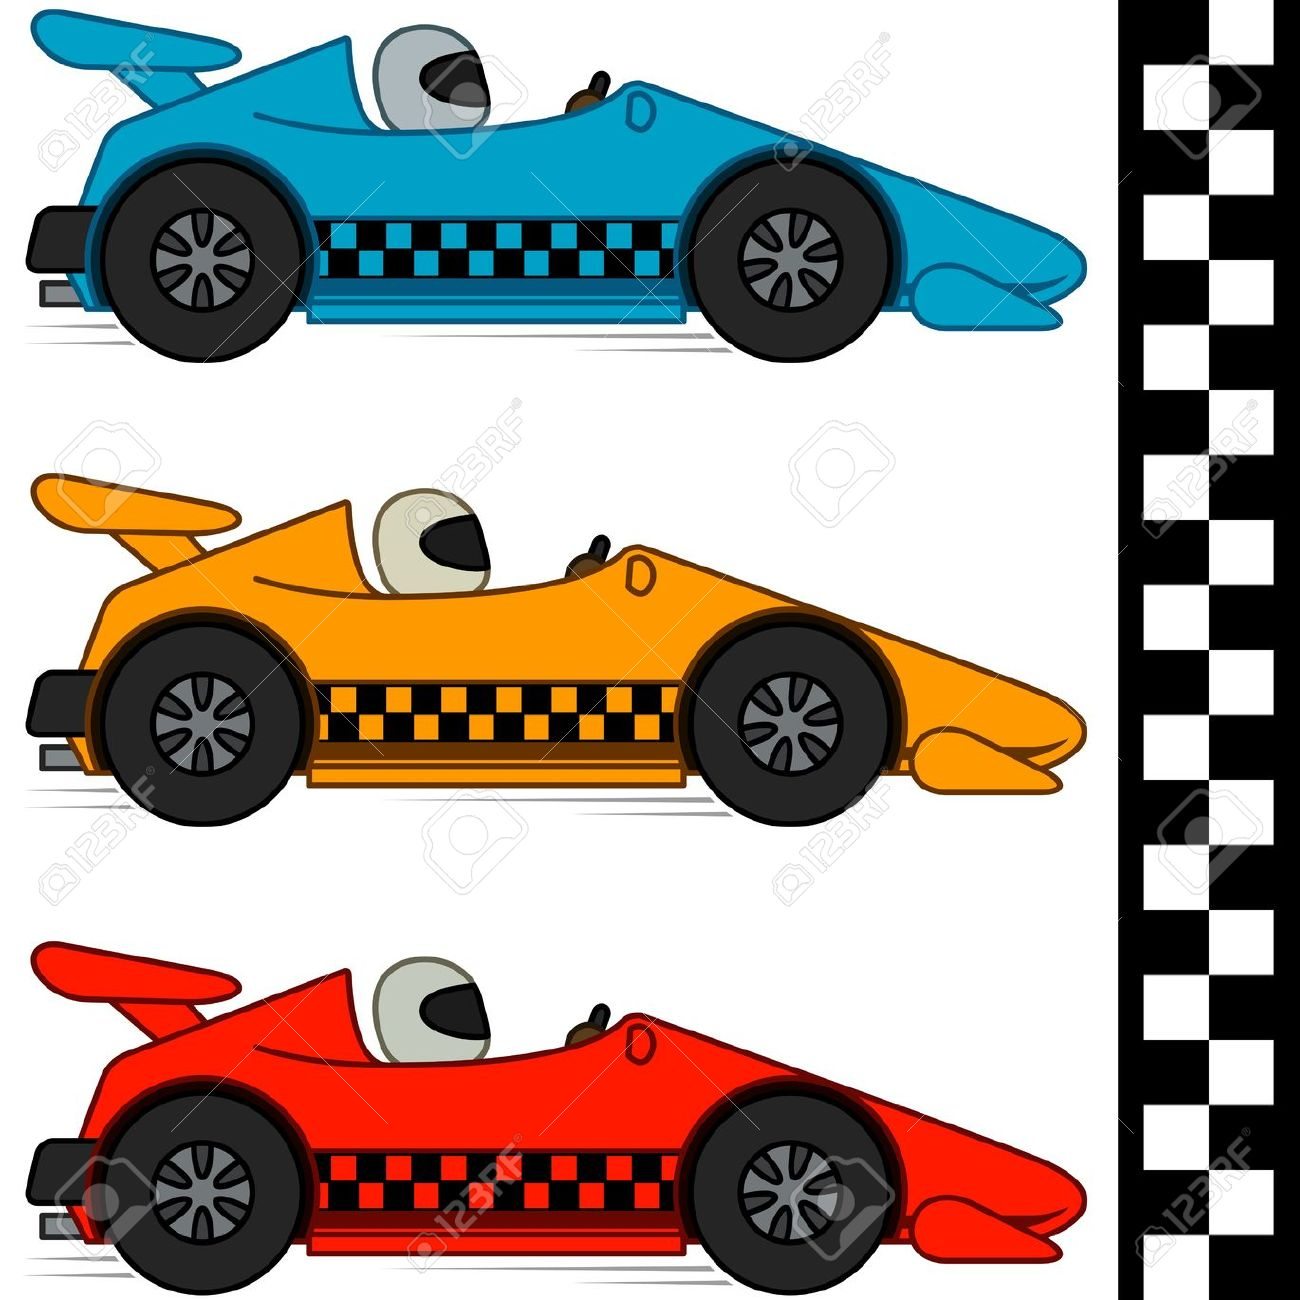 Racecars clipart picture free Car Racing Clipart | Free download best Car Racing Clipart on ... picture free